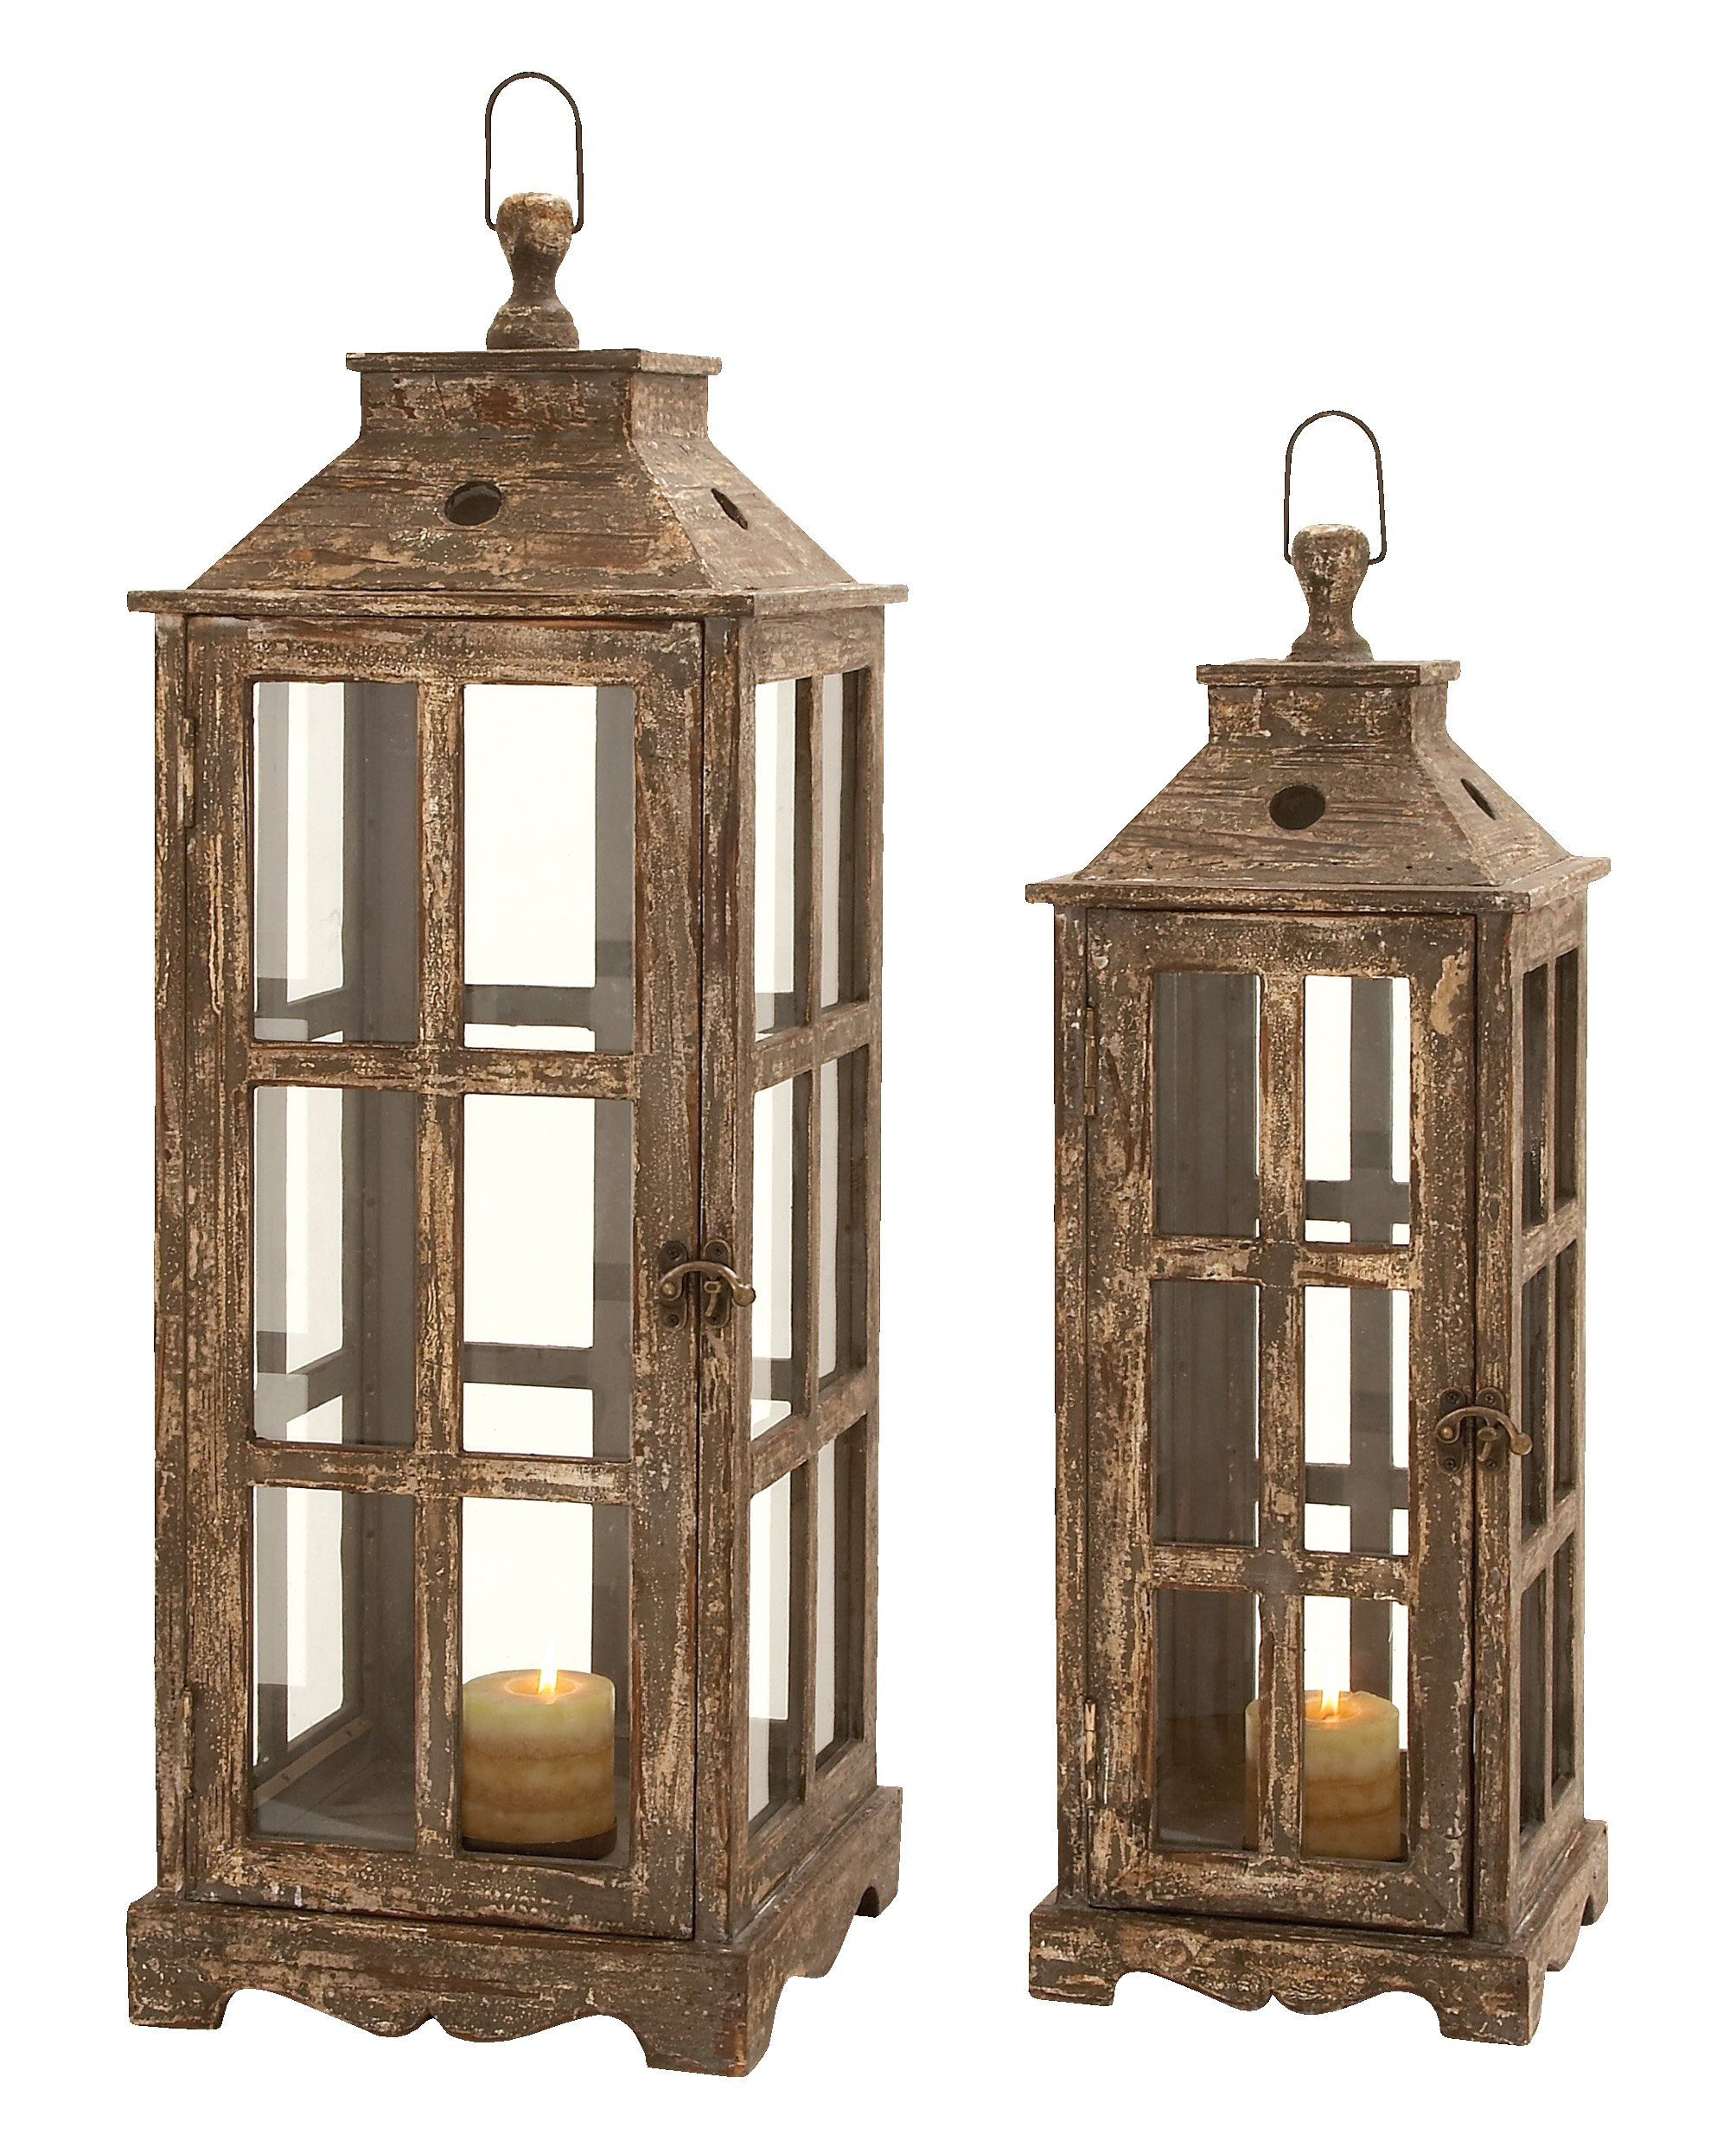 Deco 79 Wood Glass Lantern, 33 by 27-Inch, Brown, Set of 2 by Deco 79 (Image #1)